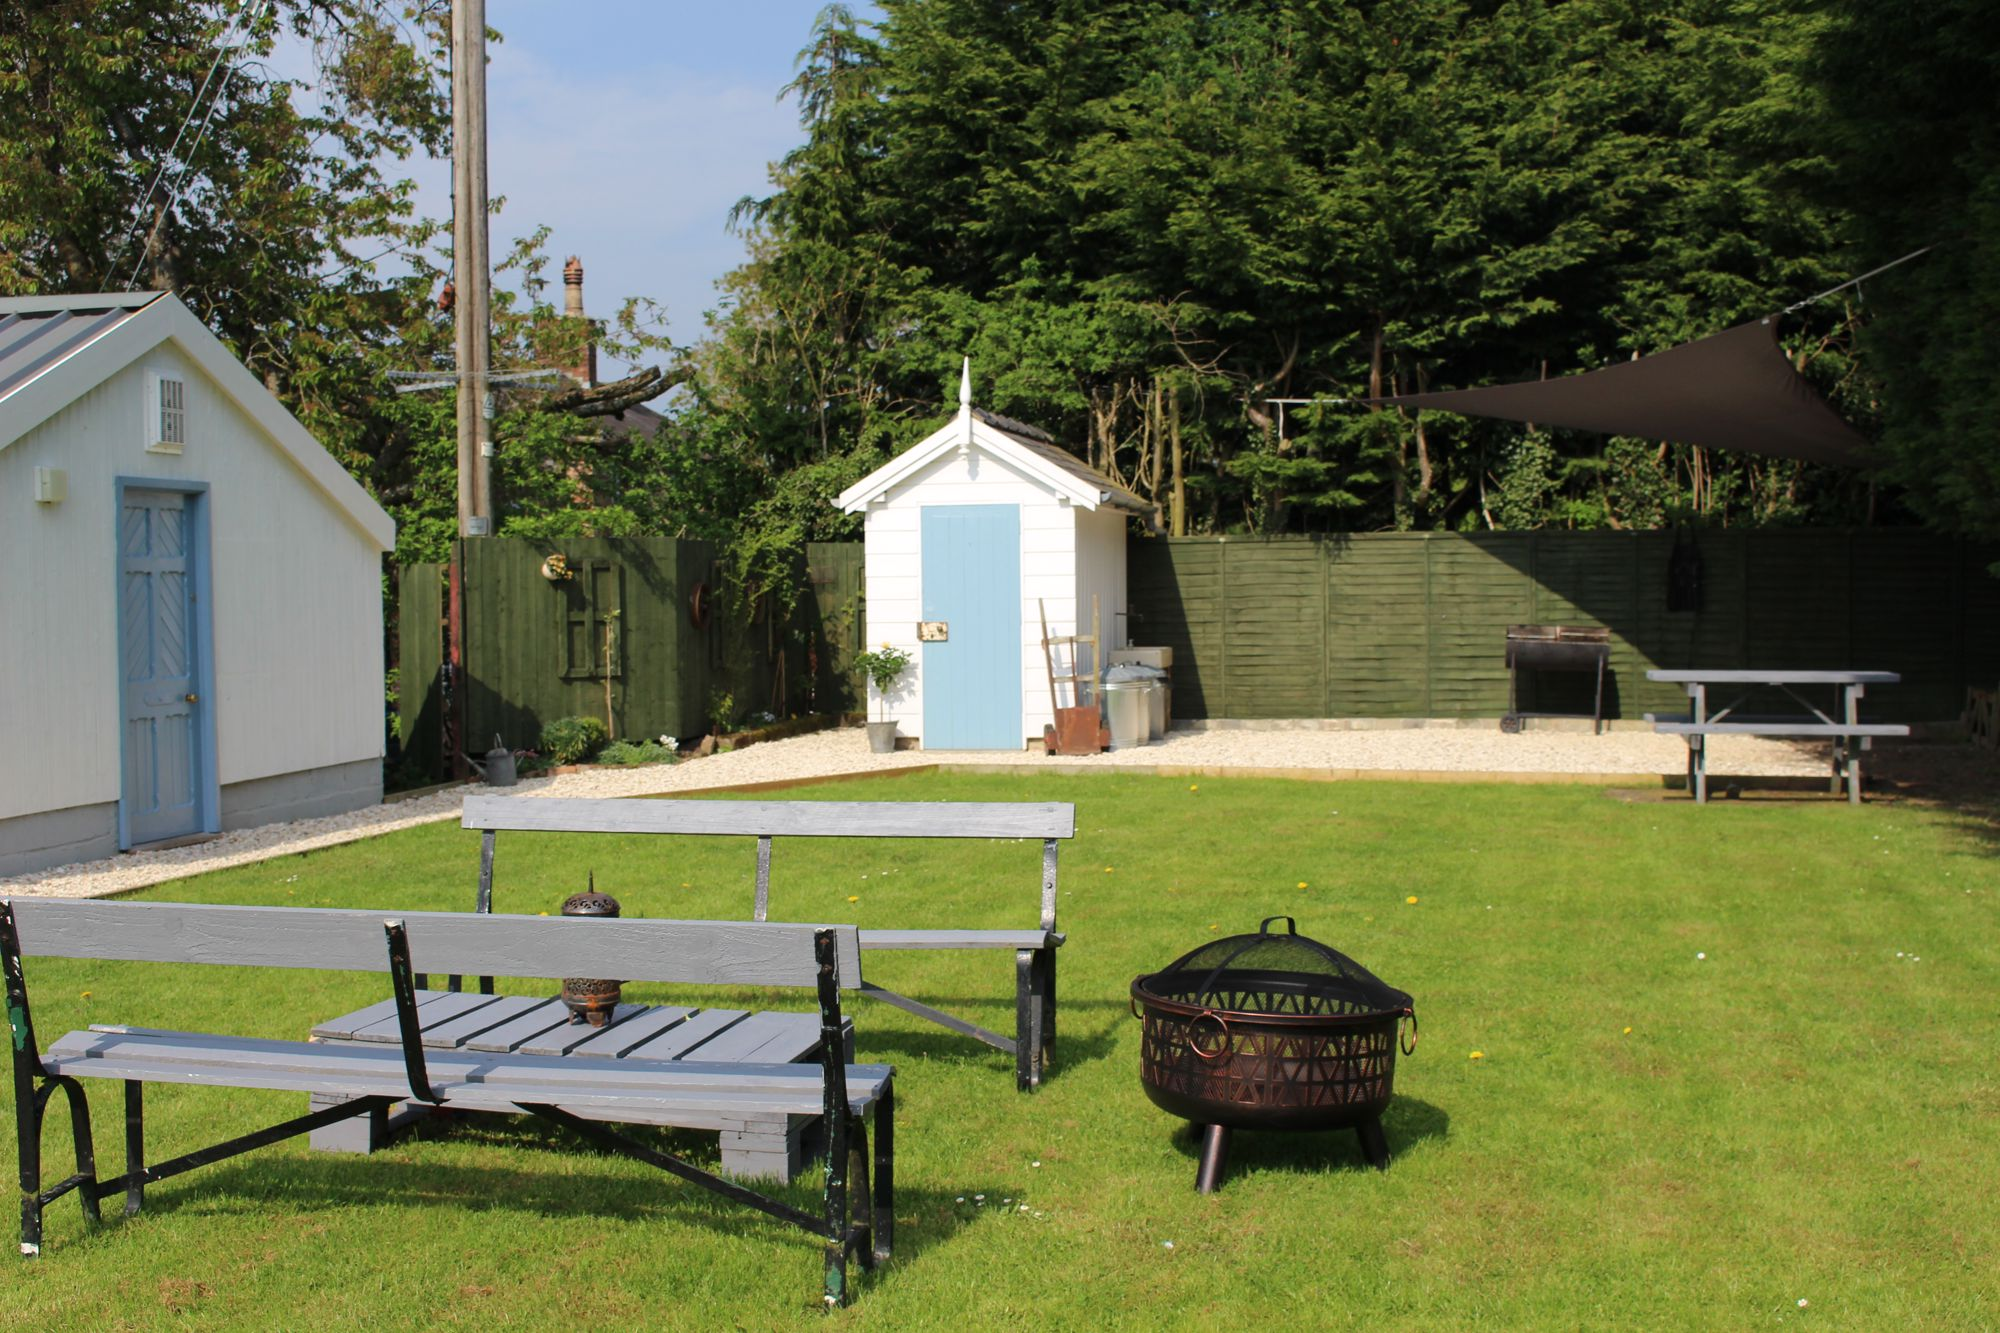 Self-Catering in North Yorkshire holidays at Cool Places